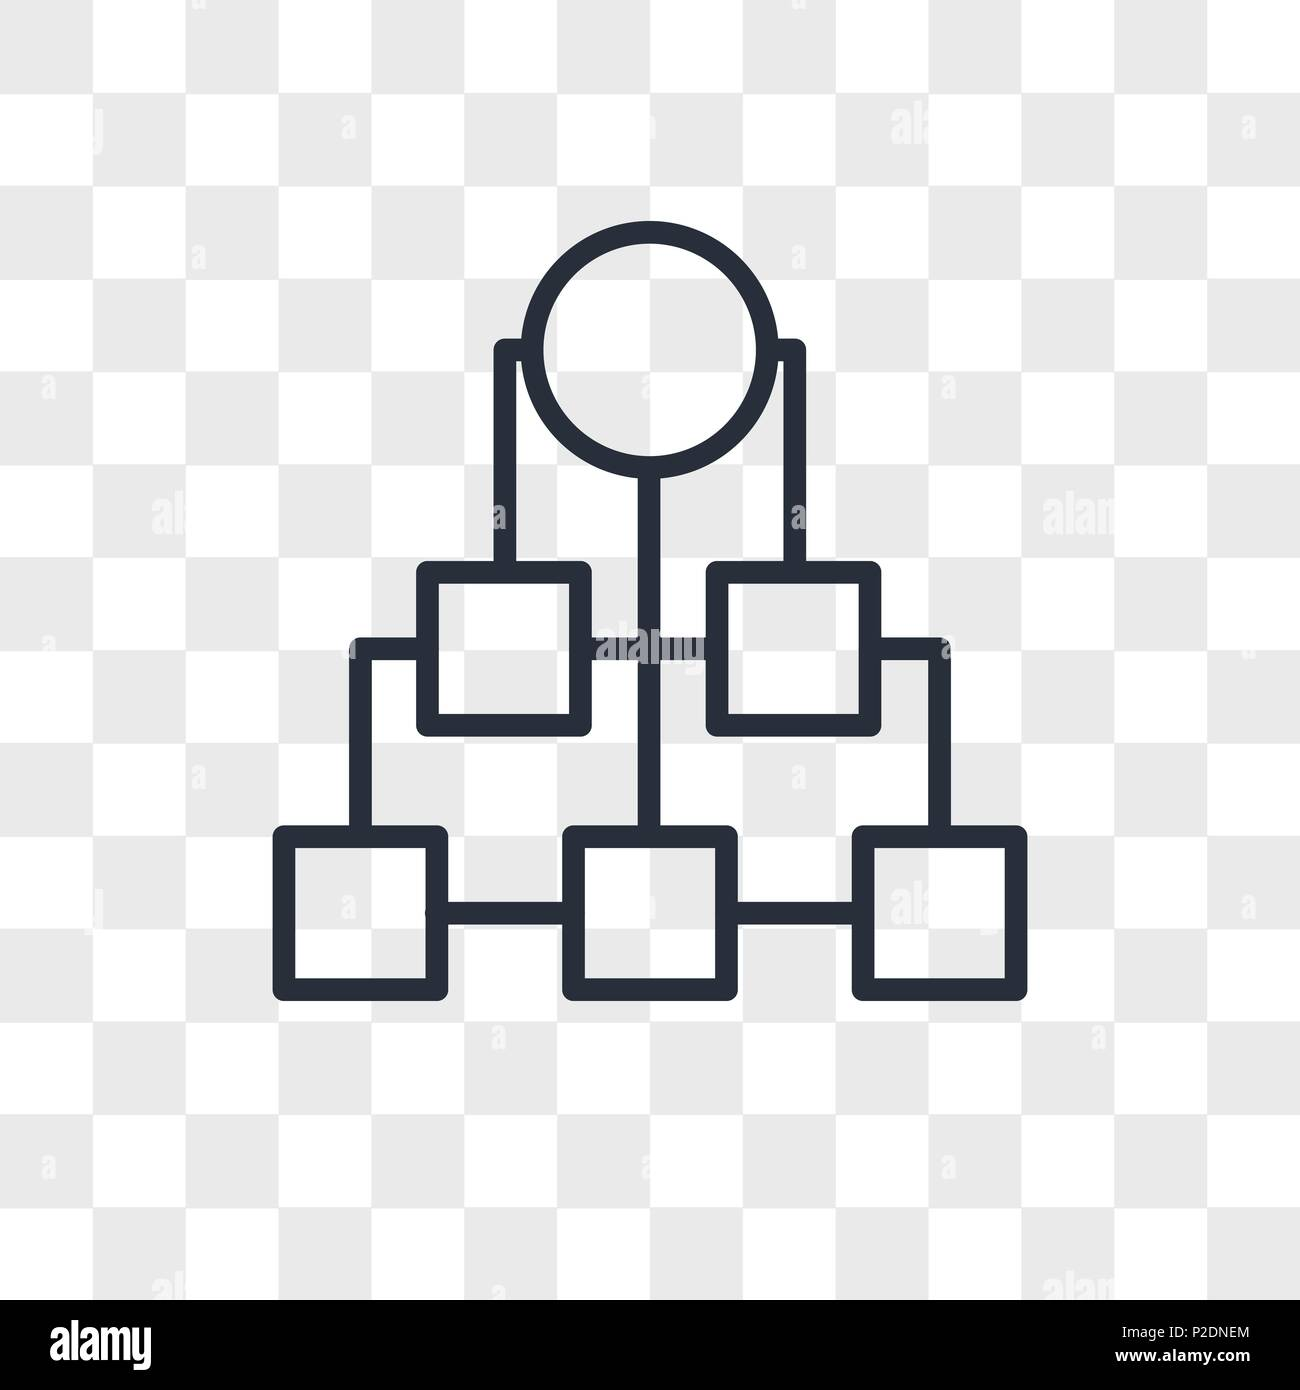 Diagram Vector Icon Isolated On Transparent Background